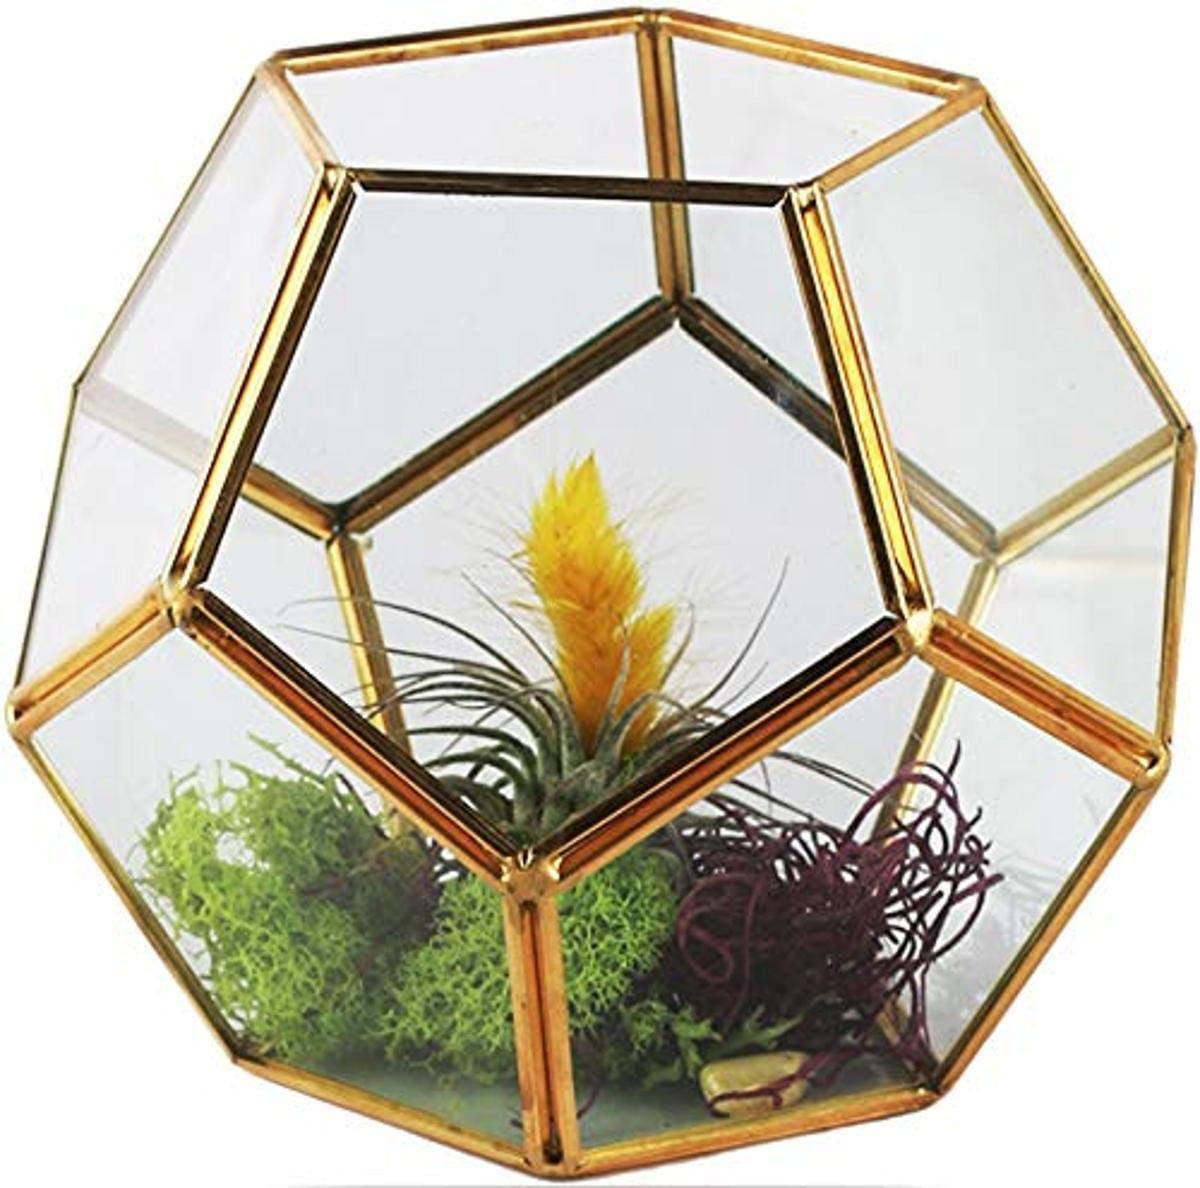 """Circleware Terraria Terrarium Clear-Glass Metal Frame Design Home Plant Decor Flower Balcony Display Box and Best Selling Garden Gifts, 7.09"""" x 5.5"""", Geometric-Gold-7.09x5.5"""